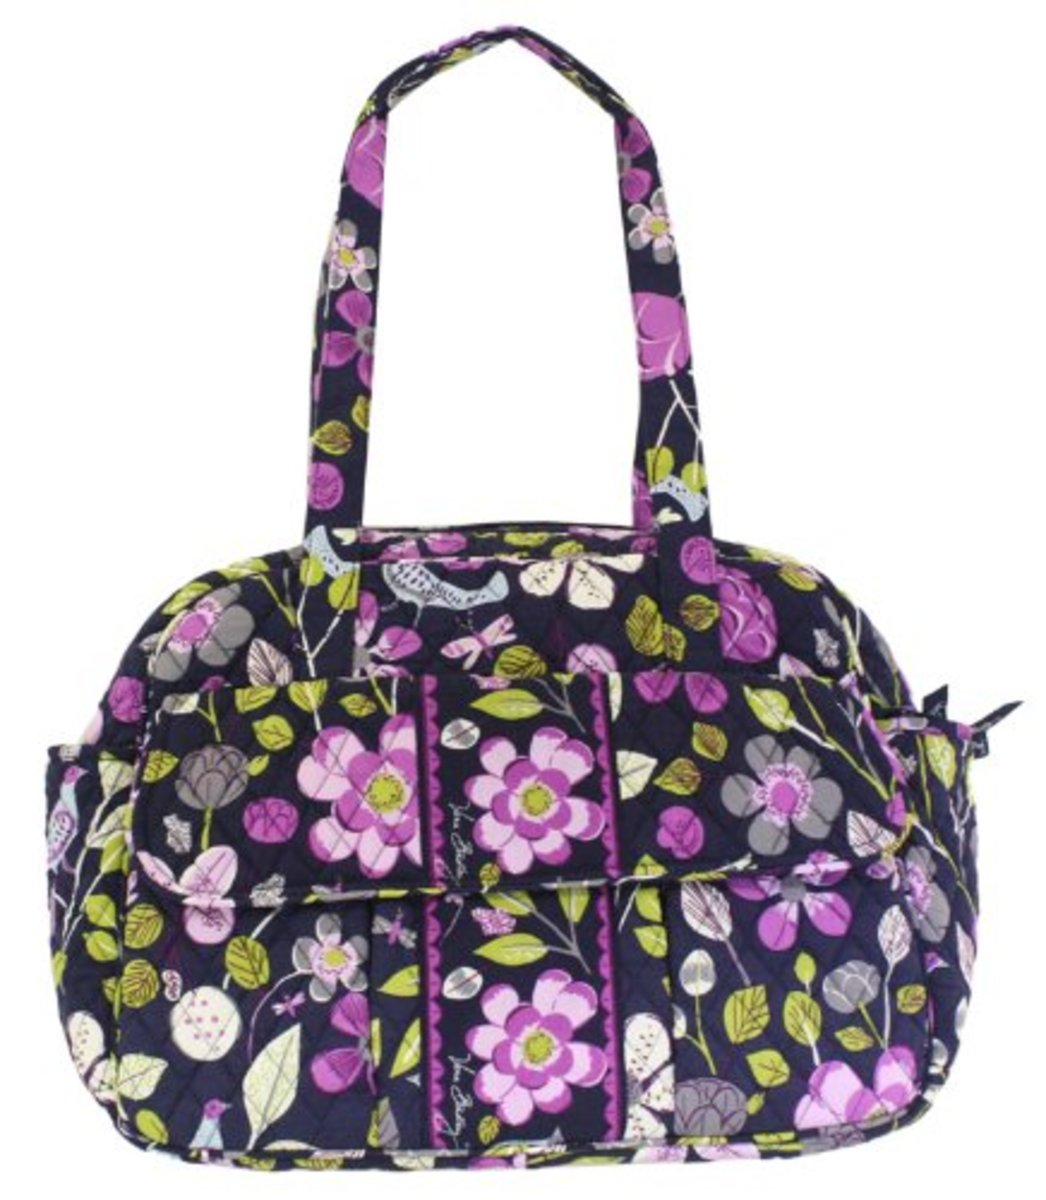 Vera Bradley Baby Bag in Floral Nightingale - Front